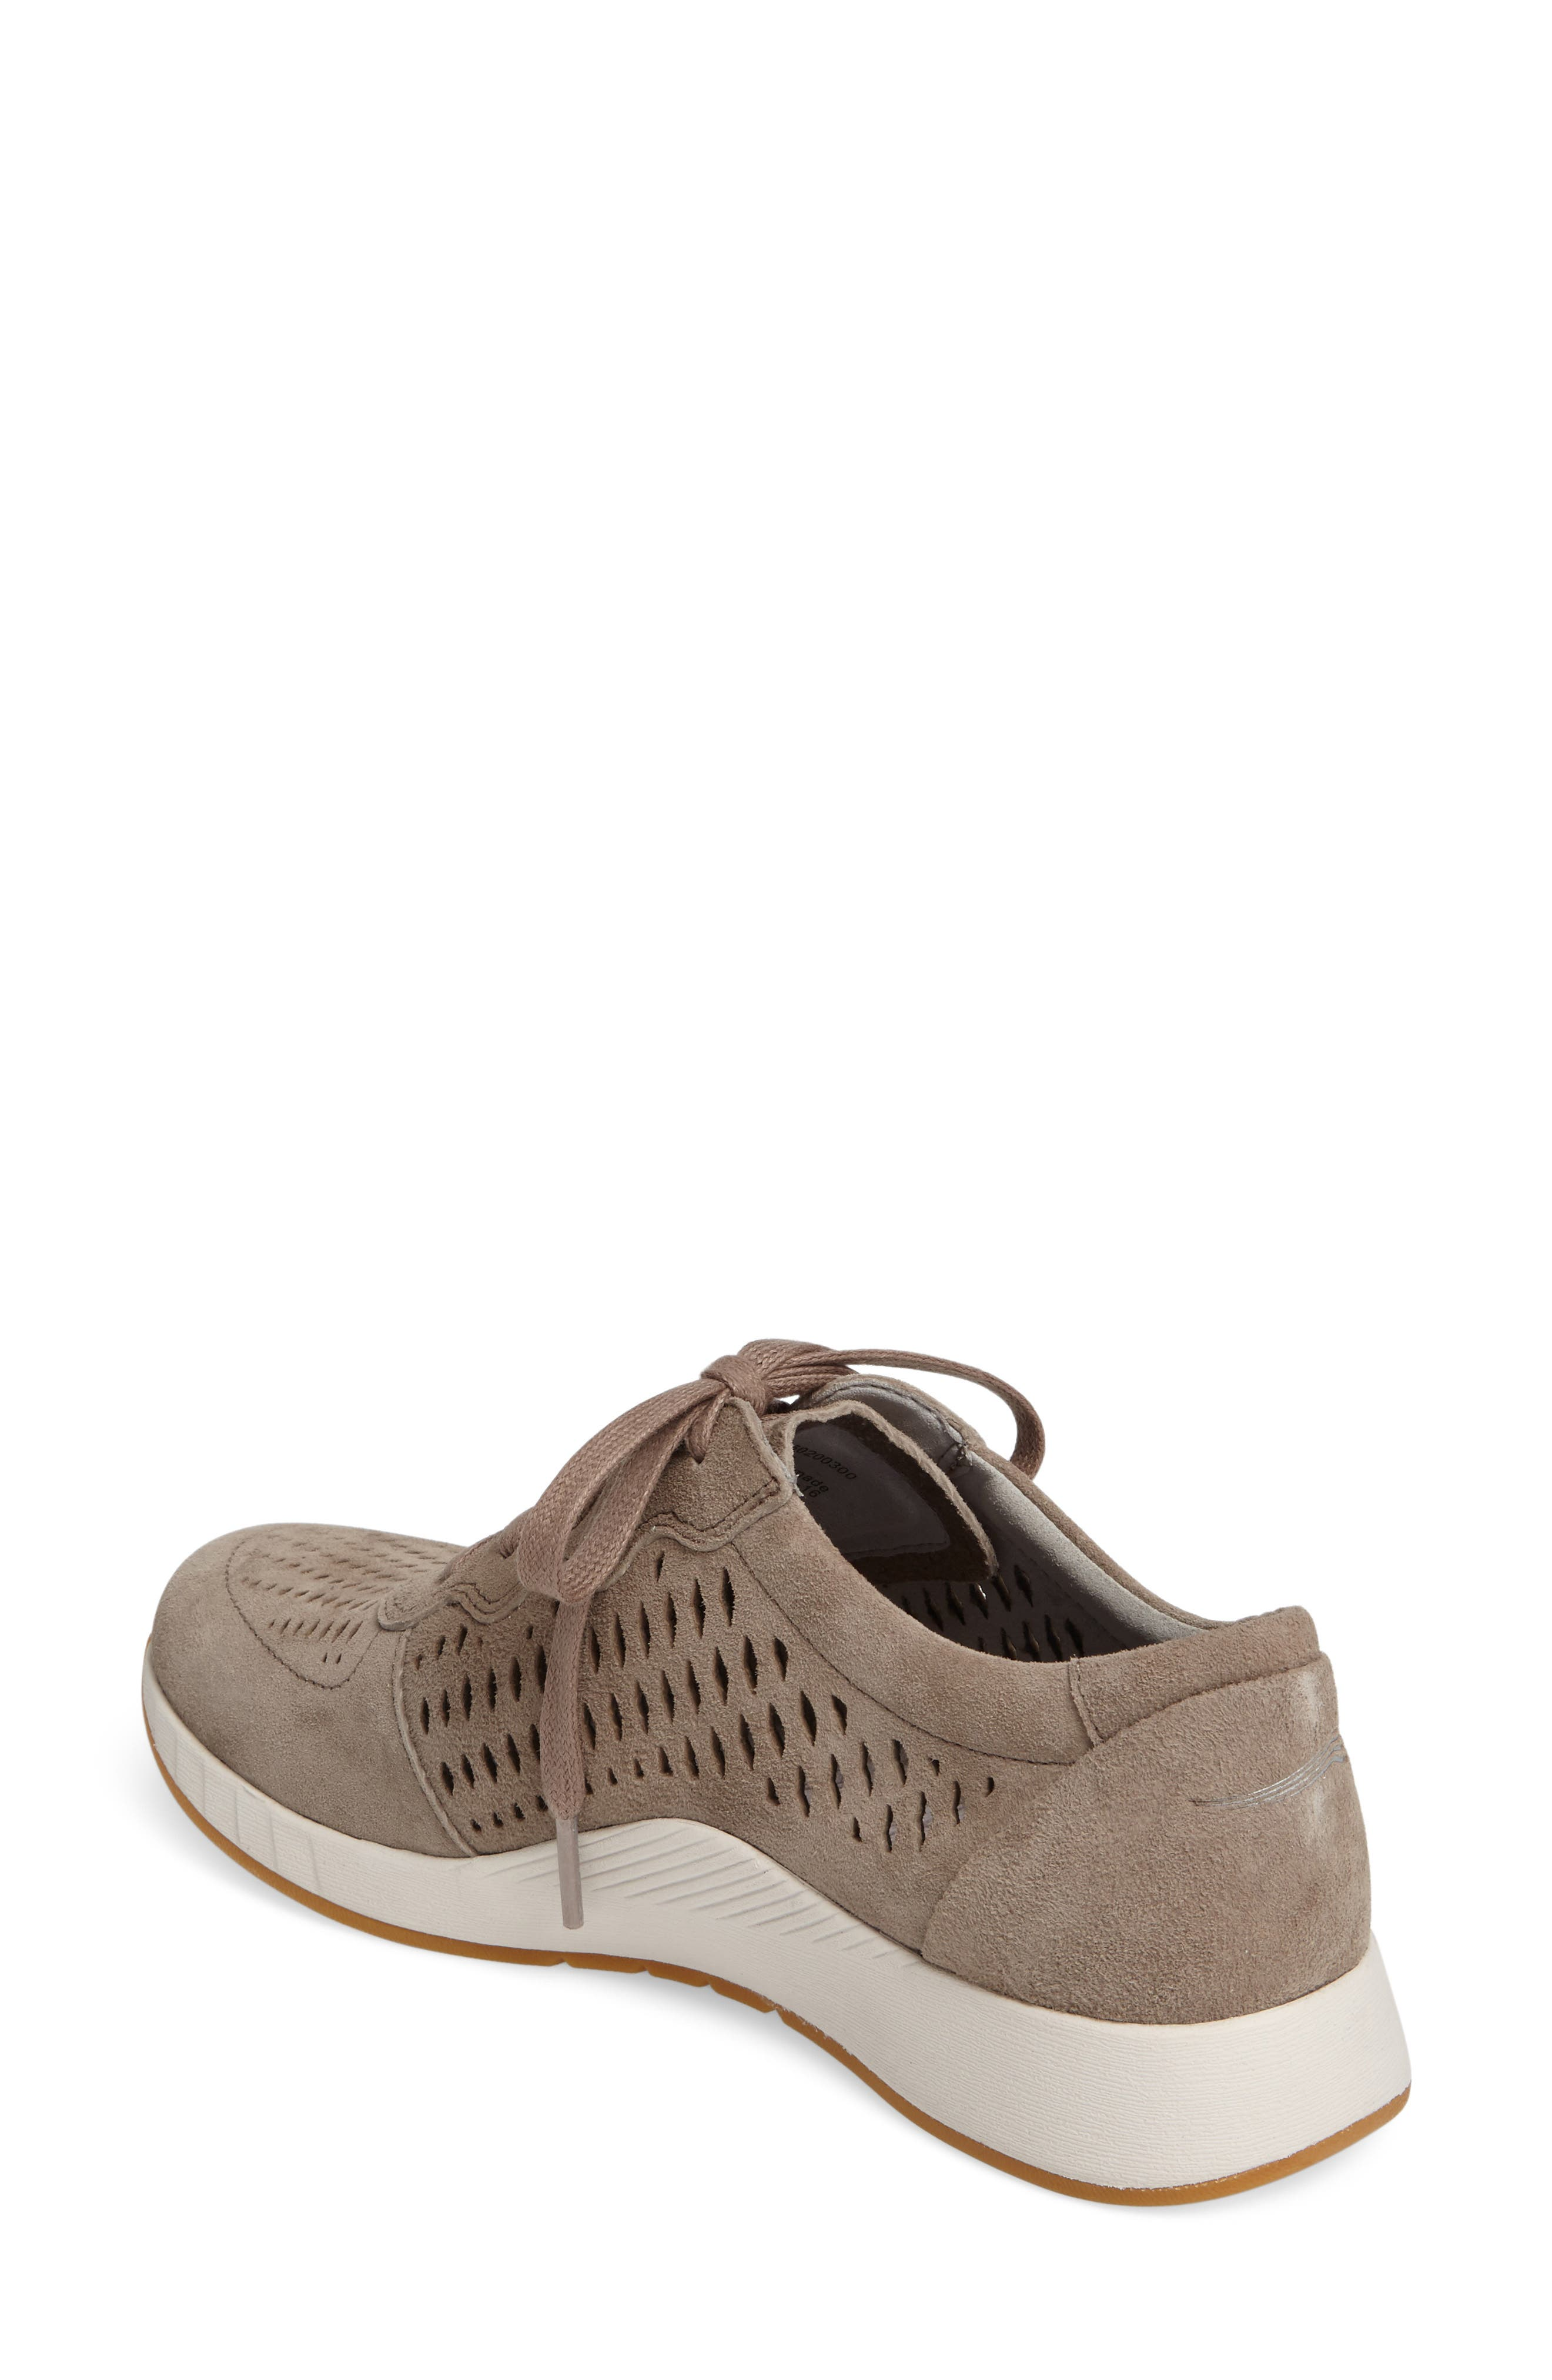 Charlie Perforated Sneaker,                             Alternate thumbnail 2, color,                             WALNUT SUEDE